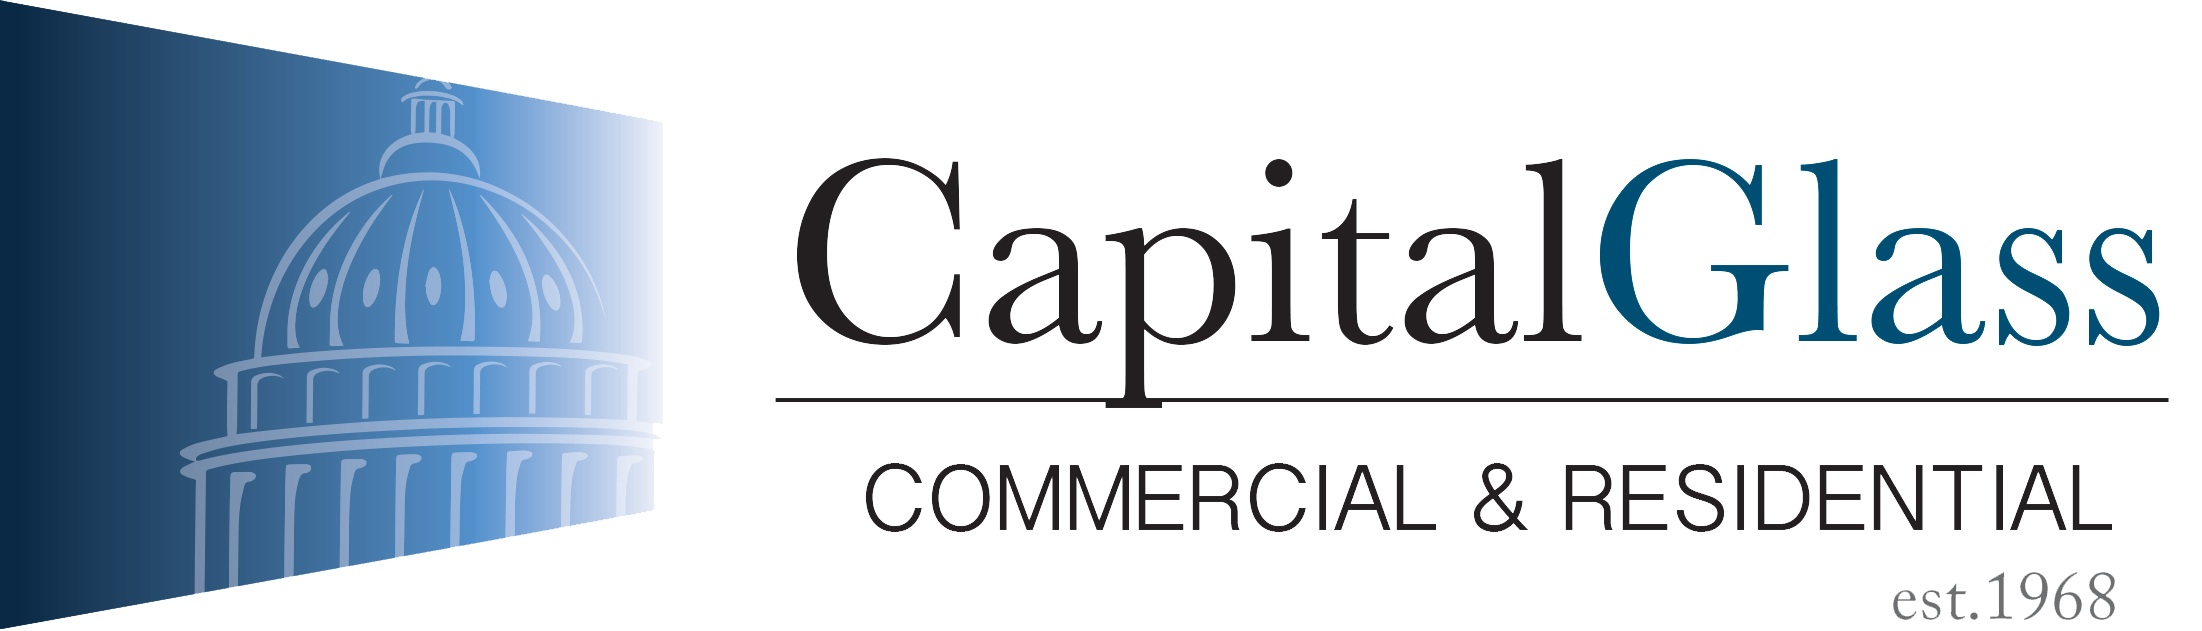 Capital+Glass+Logo.jpg